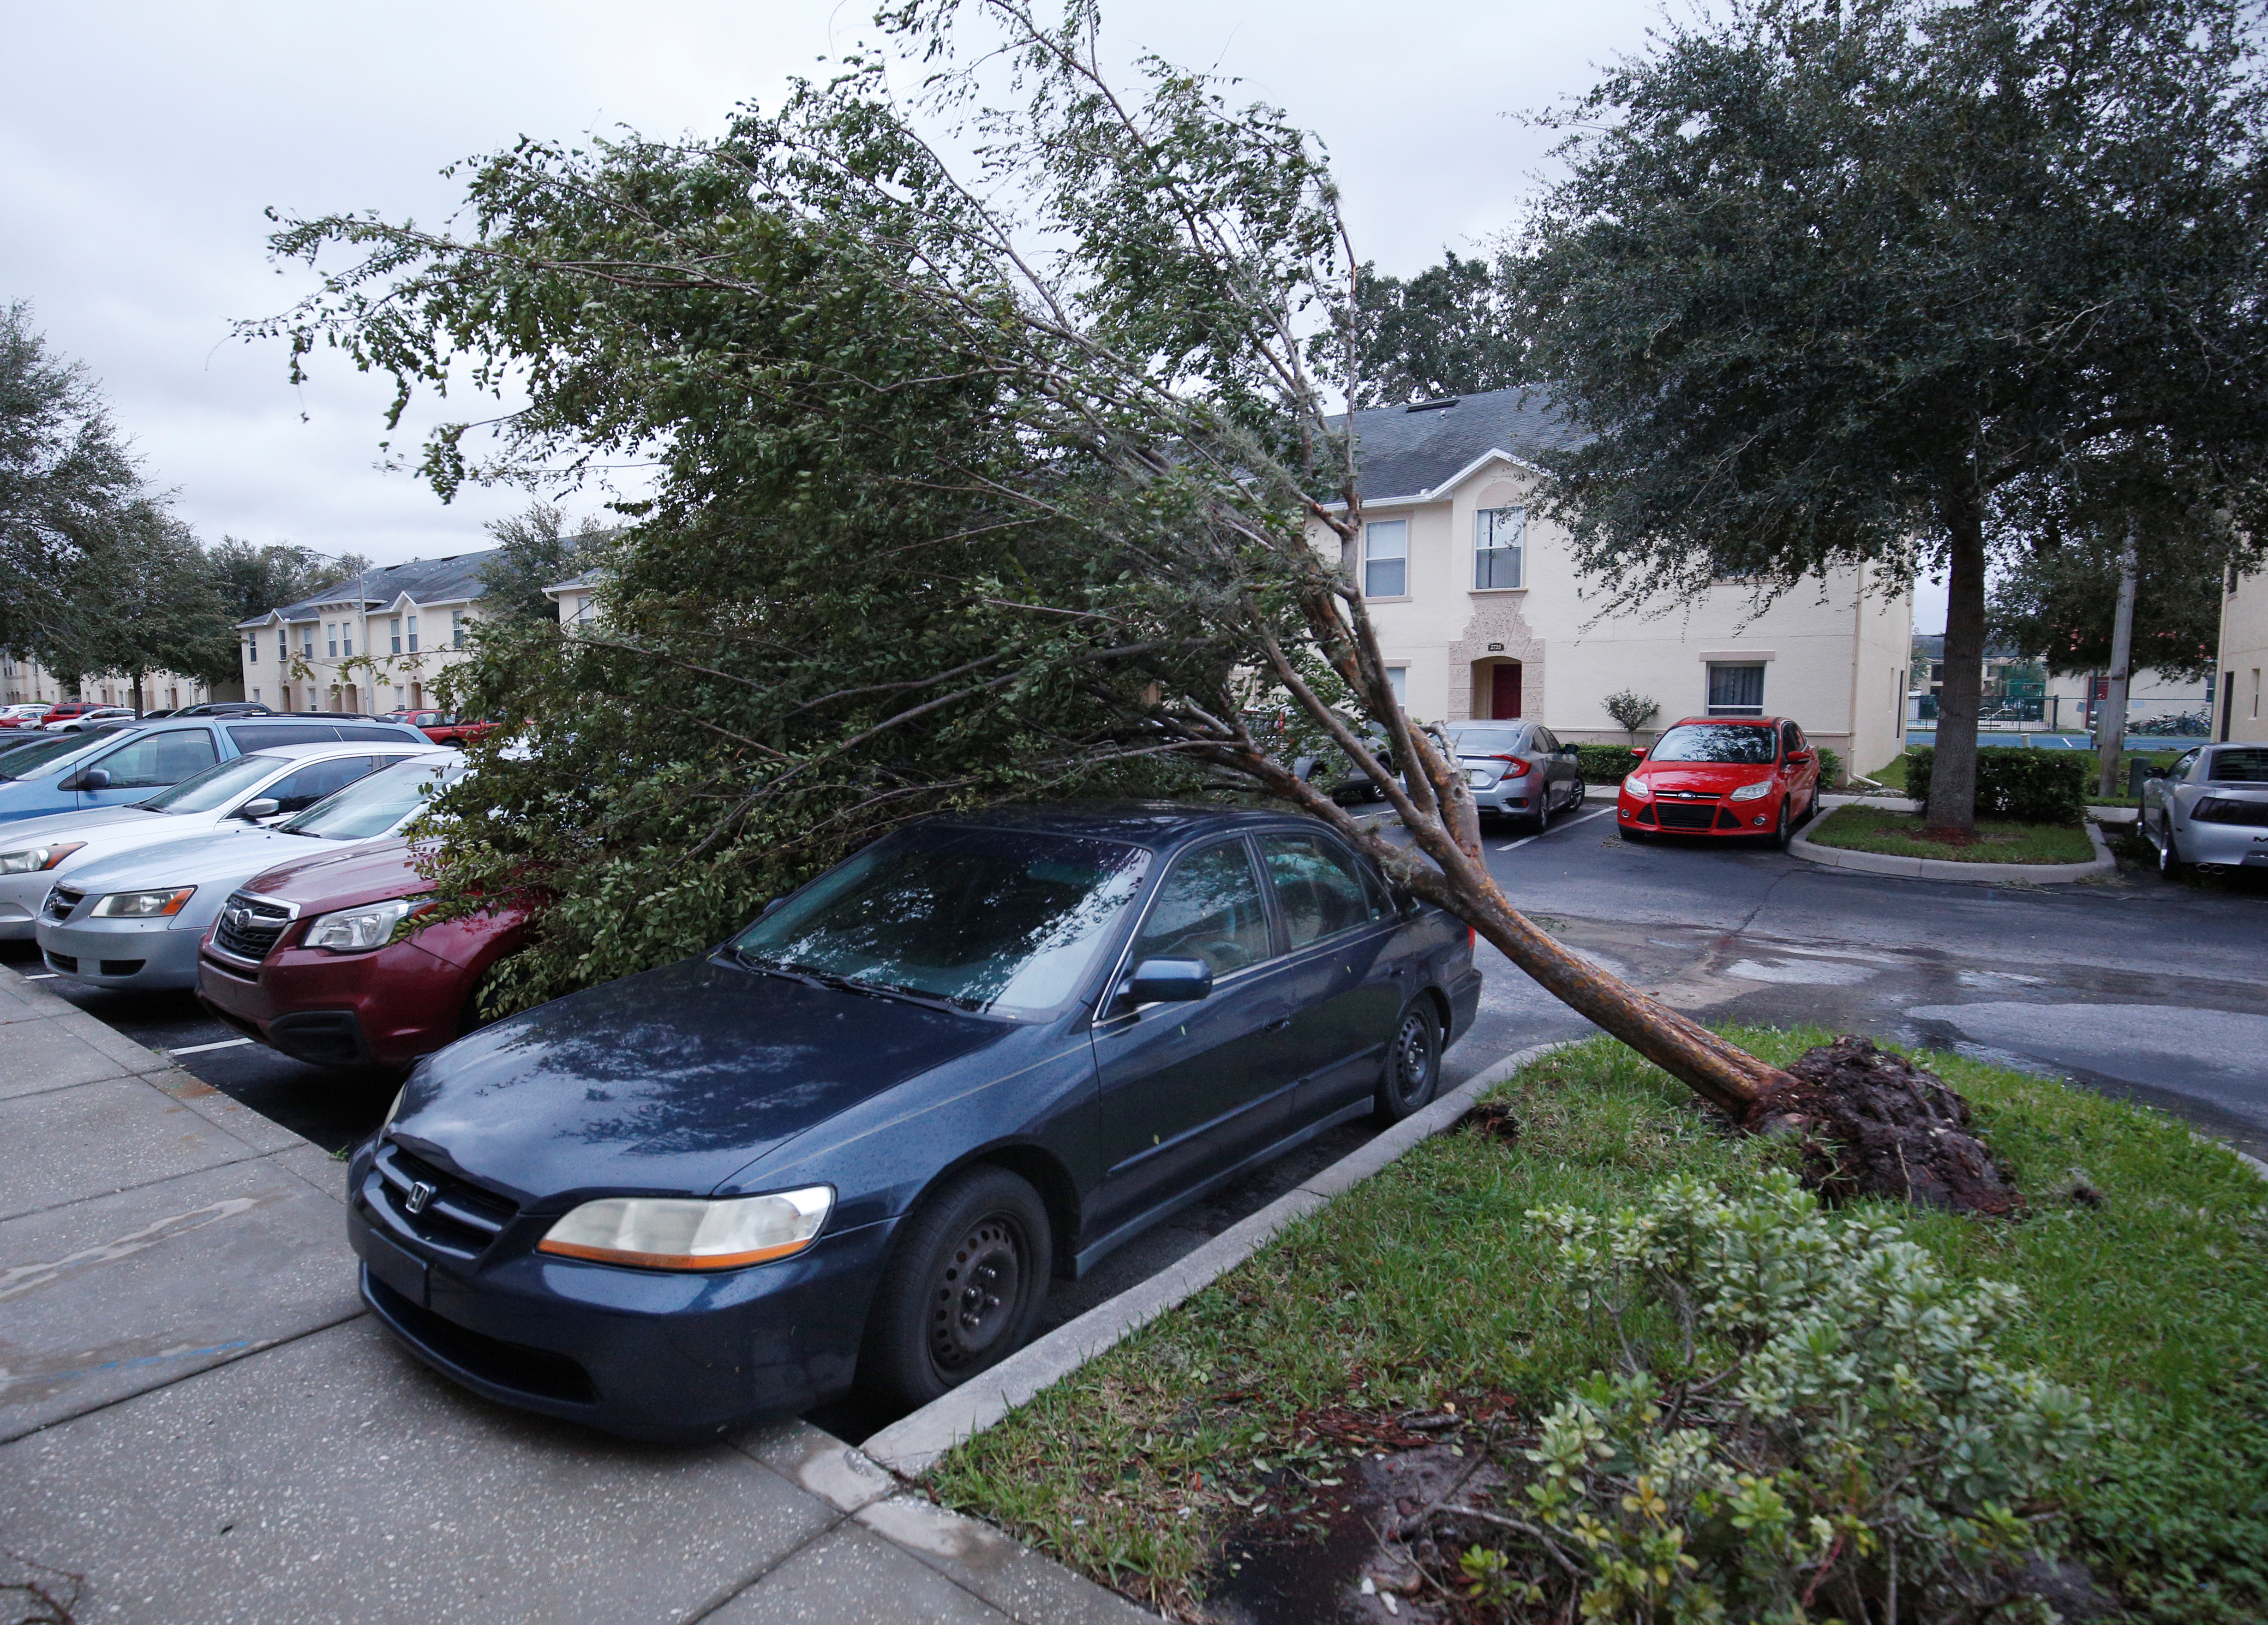 A tree sits atop two cars in wake of Hurricane Irma making landfall in Kissimmee, Florida on Sept. 11, 2017. (REUTERS/Gregg Newton)